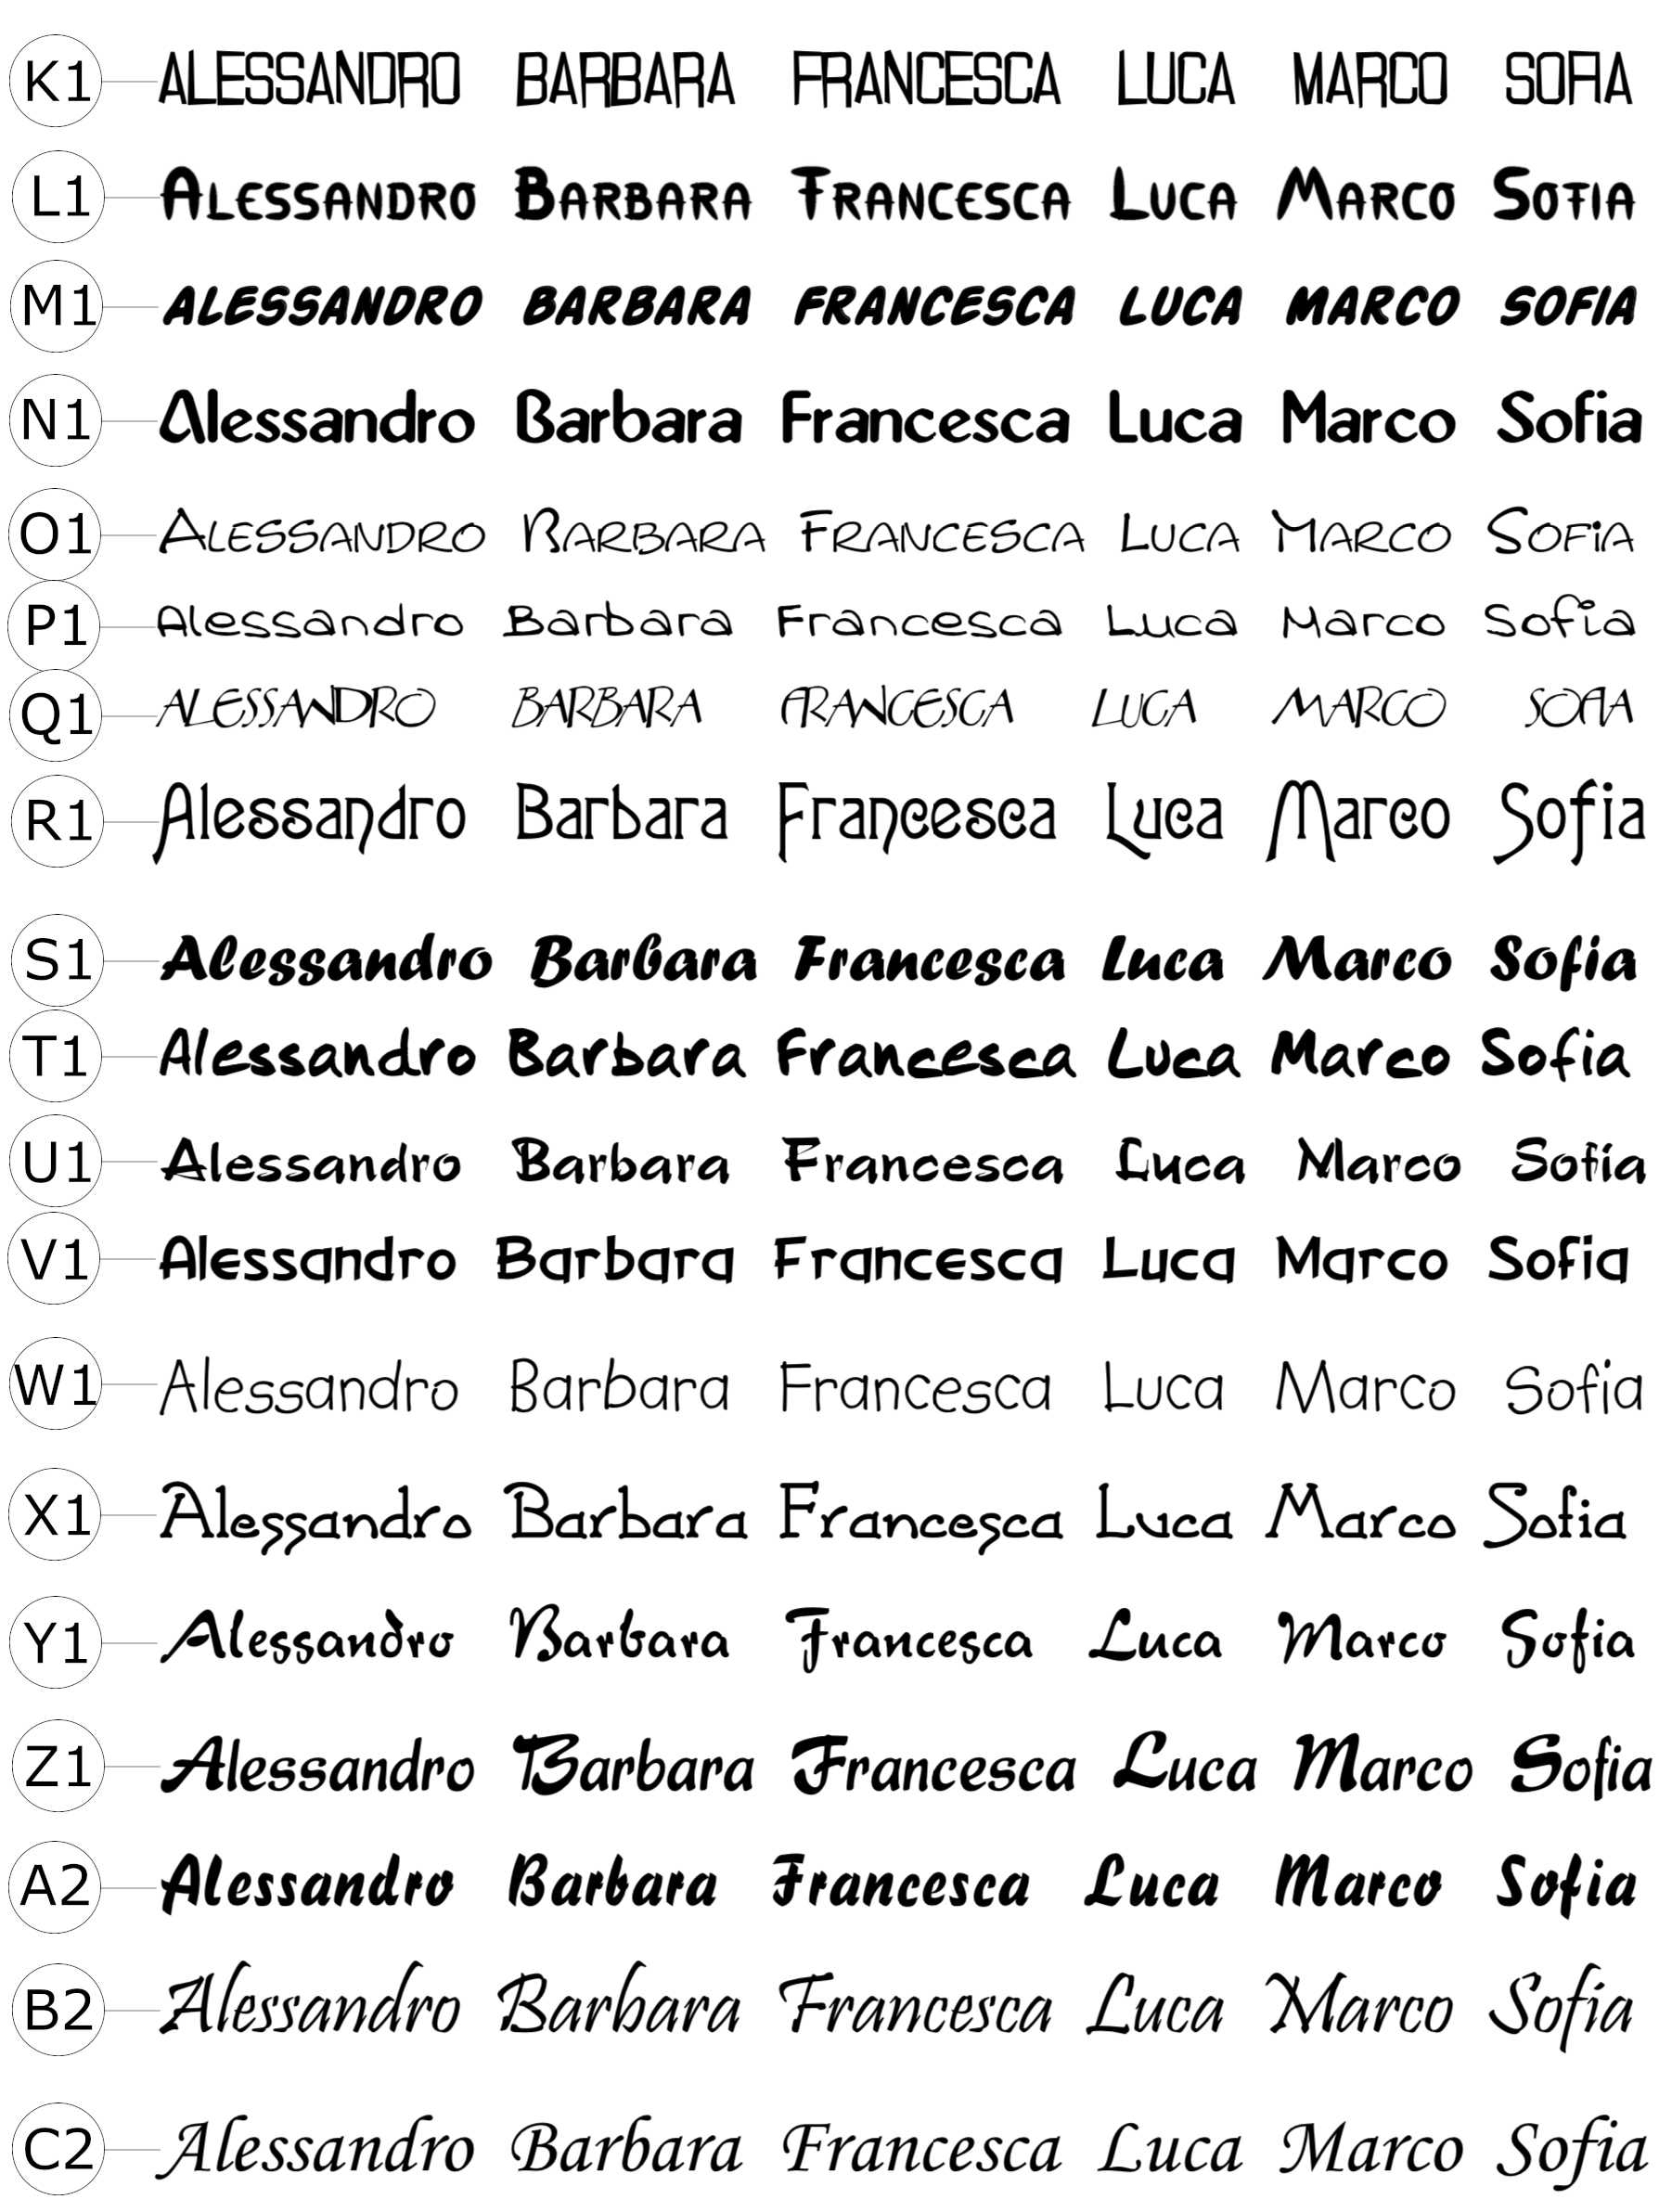 elenco font incisioni pagina 3